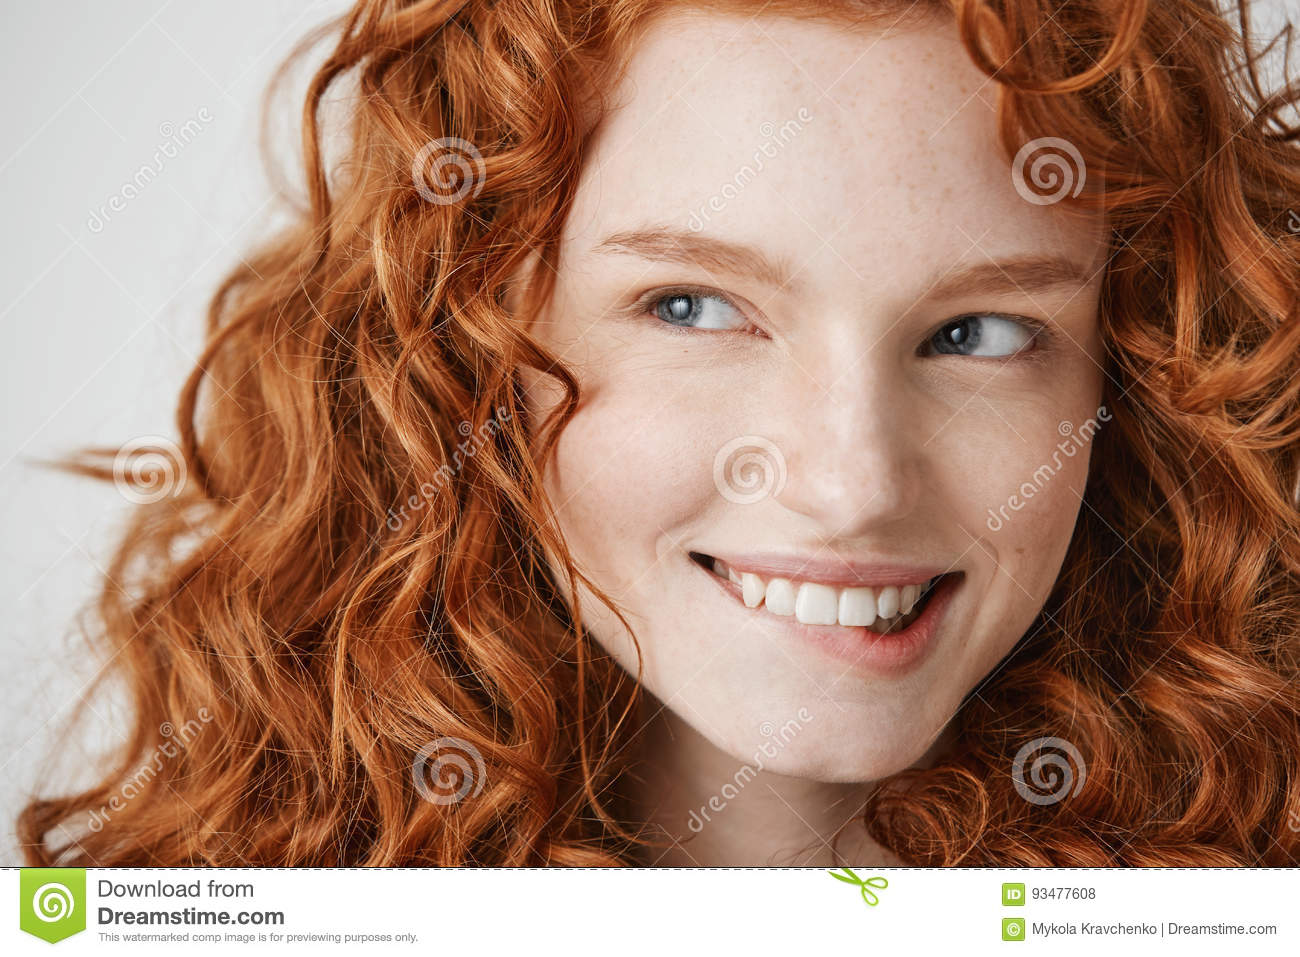 red Girl hair freckles with